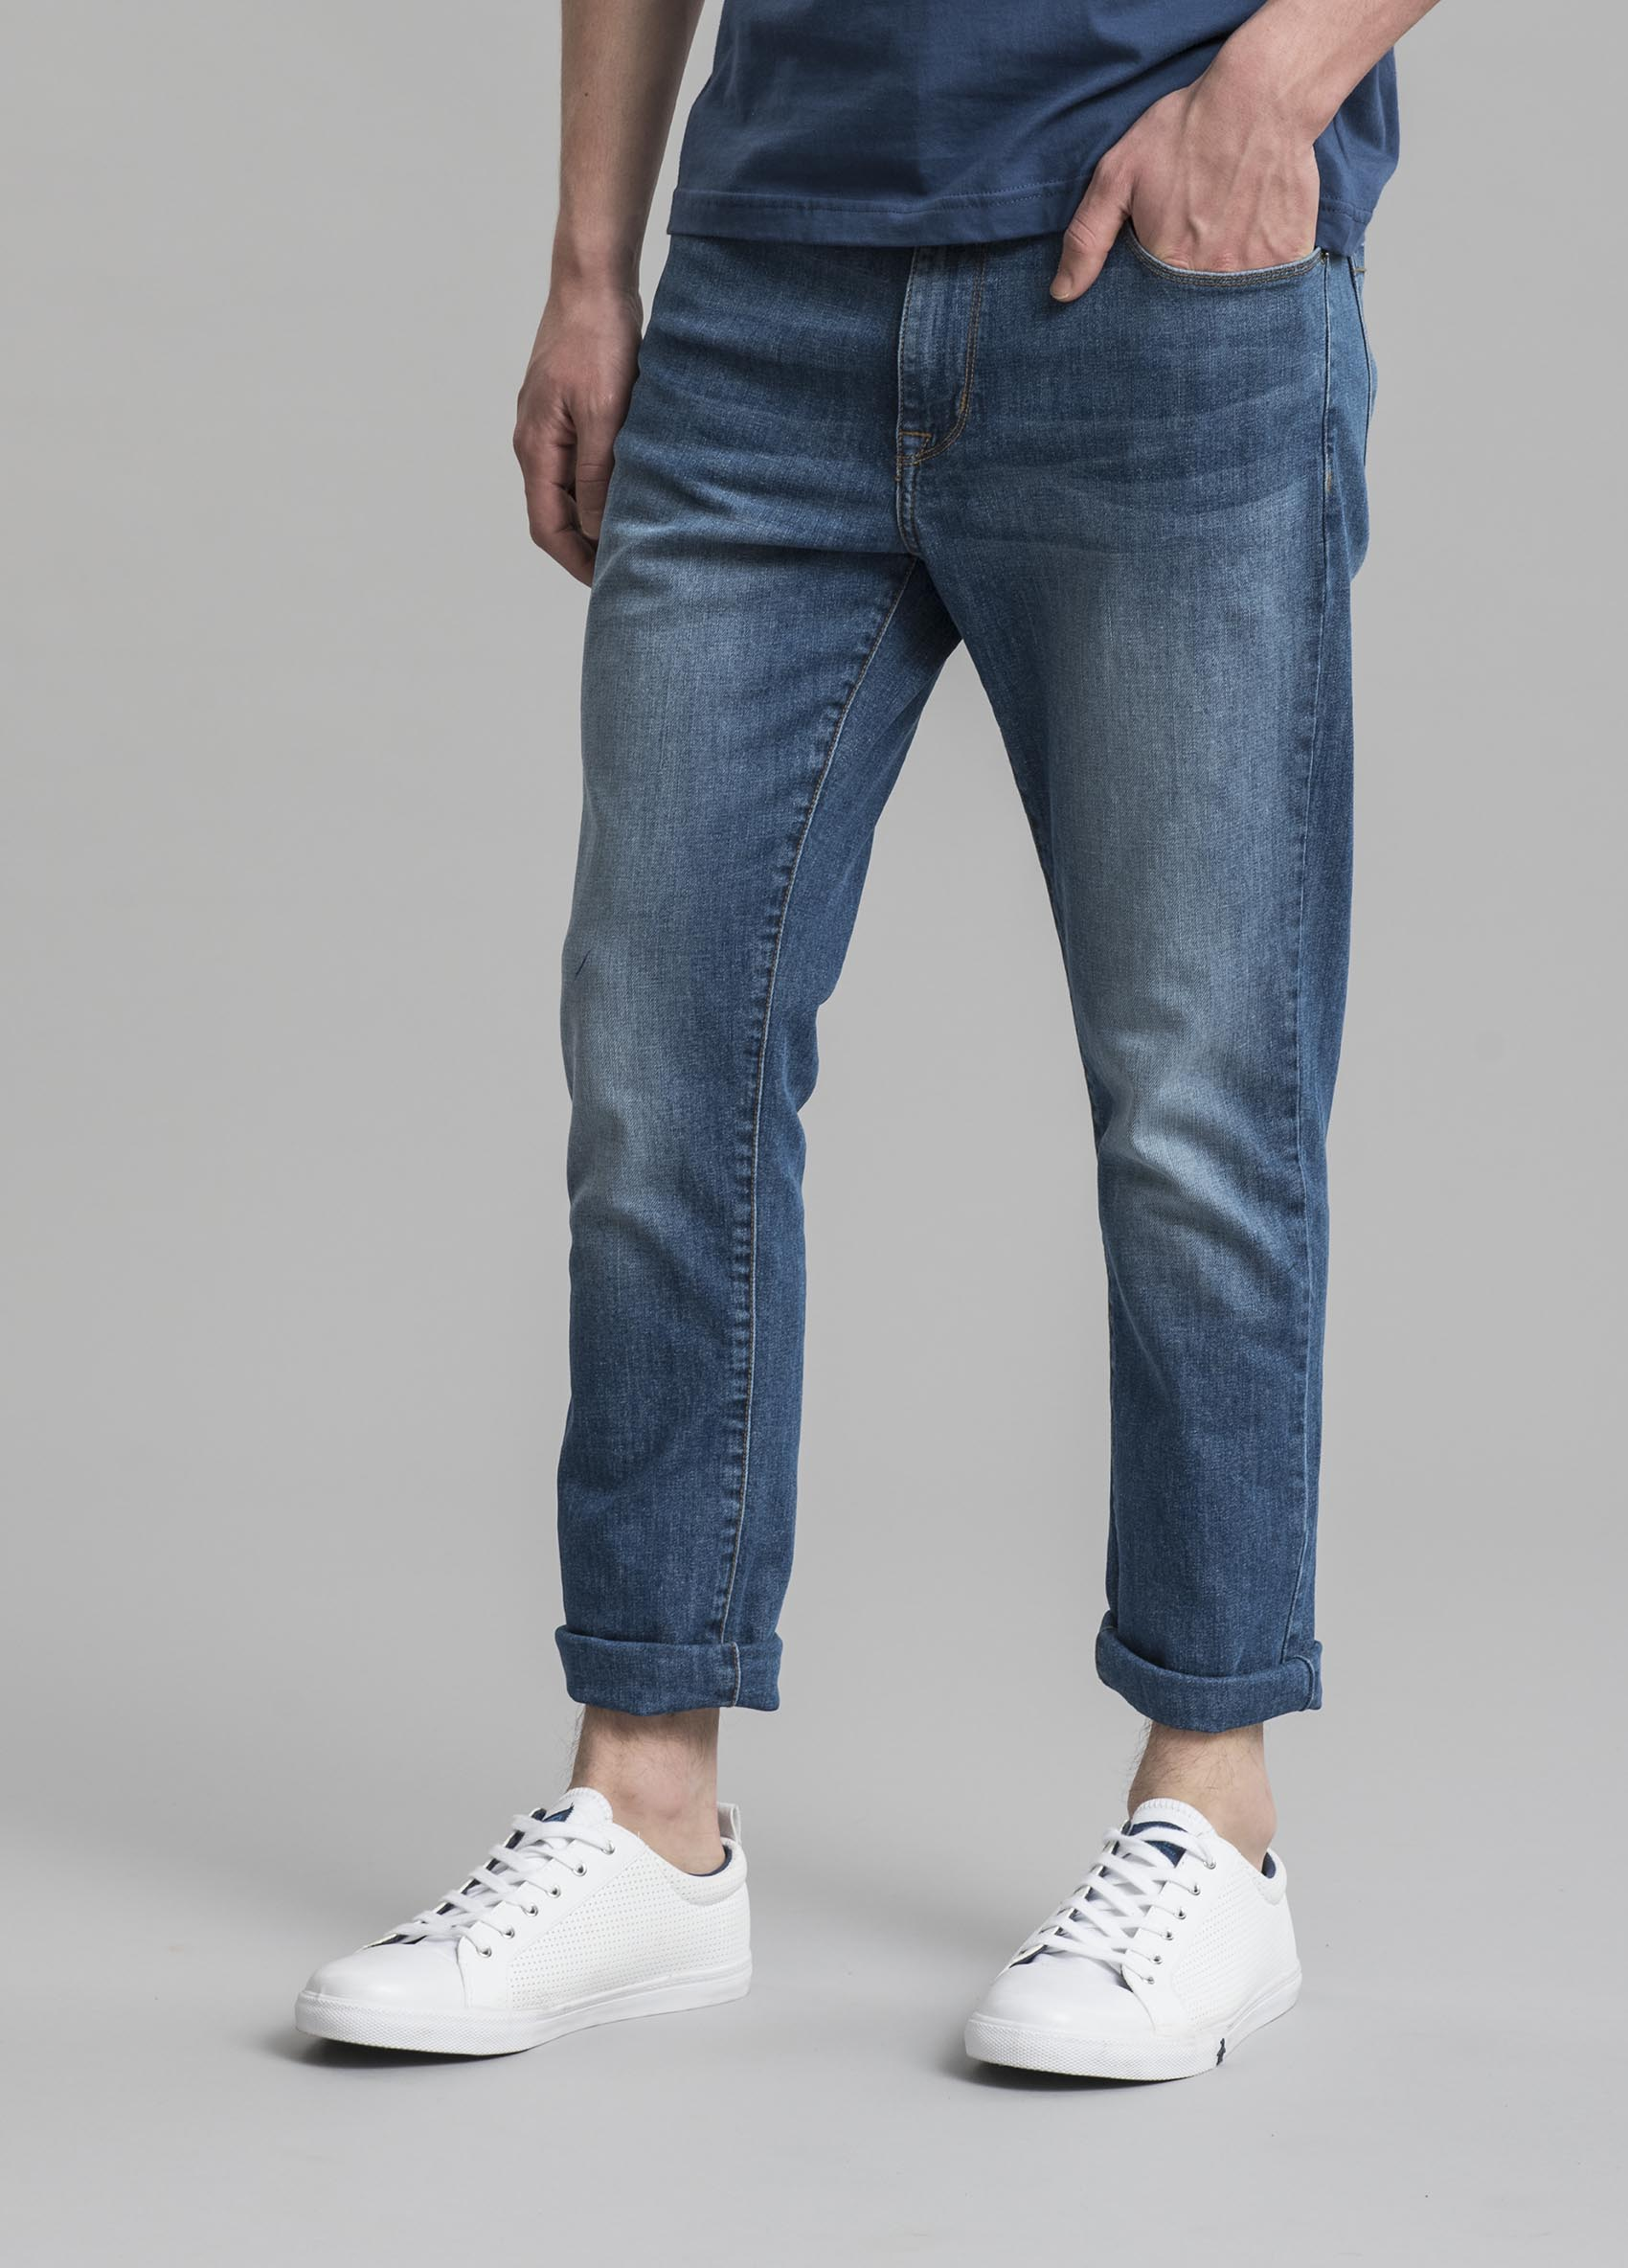 penguin_5-pkt-denim-skinny_04-28-2020__picture-12307